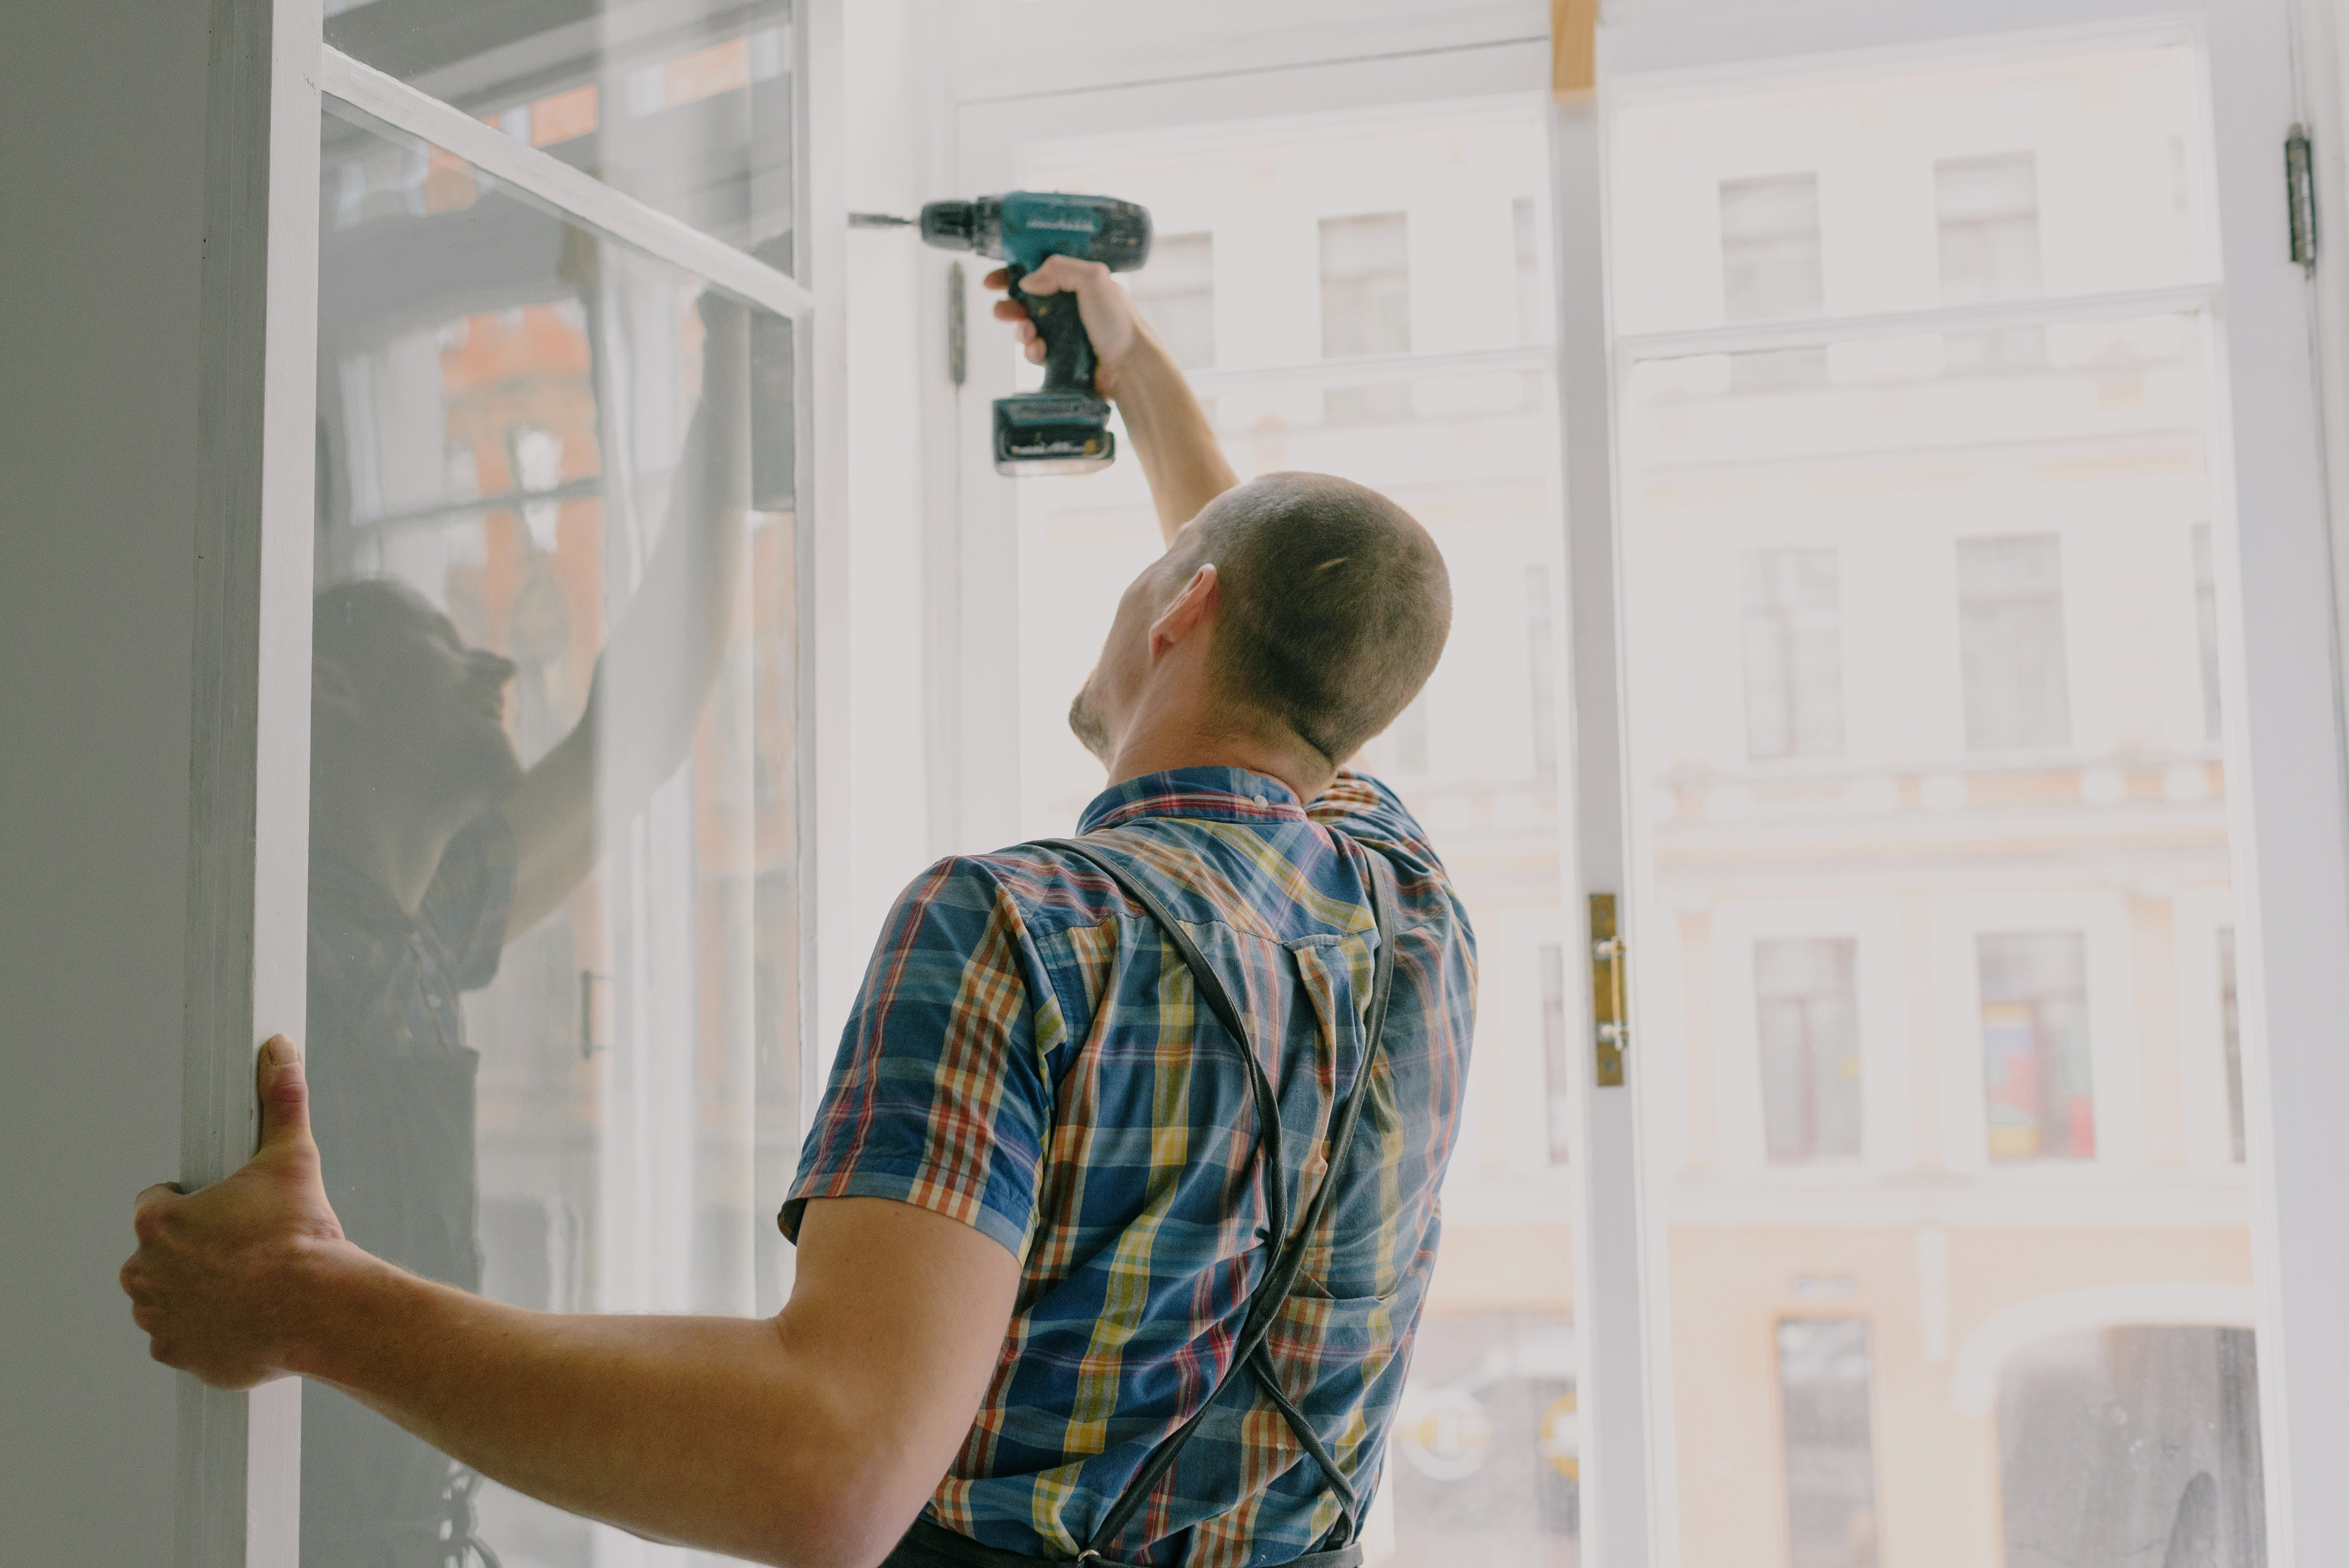 Person at work using a drill